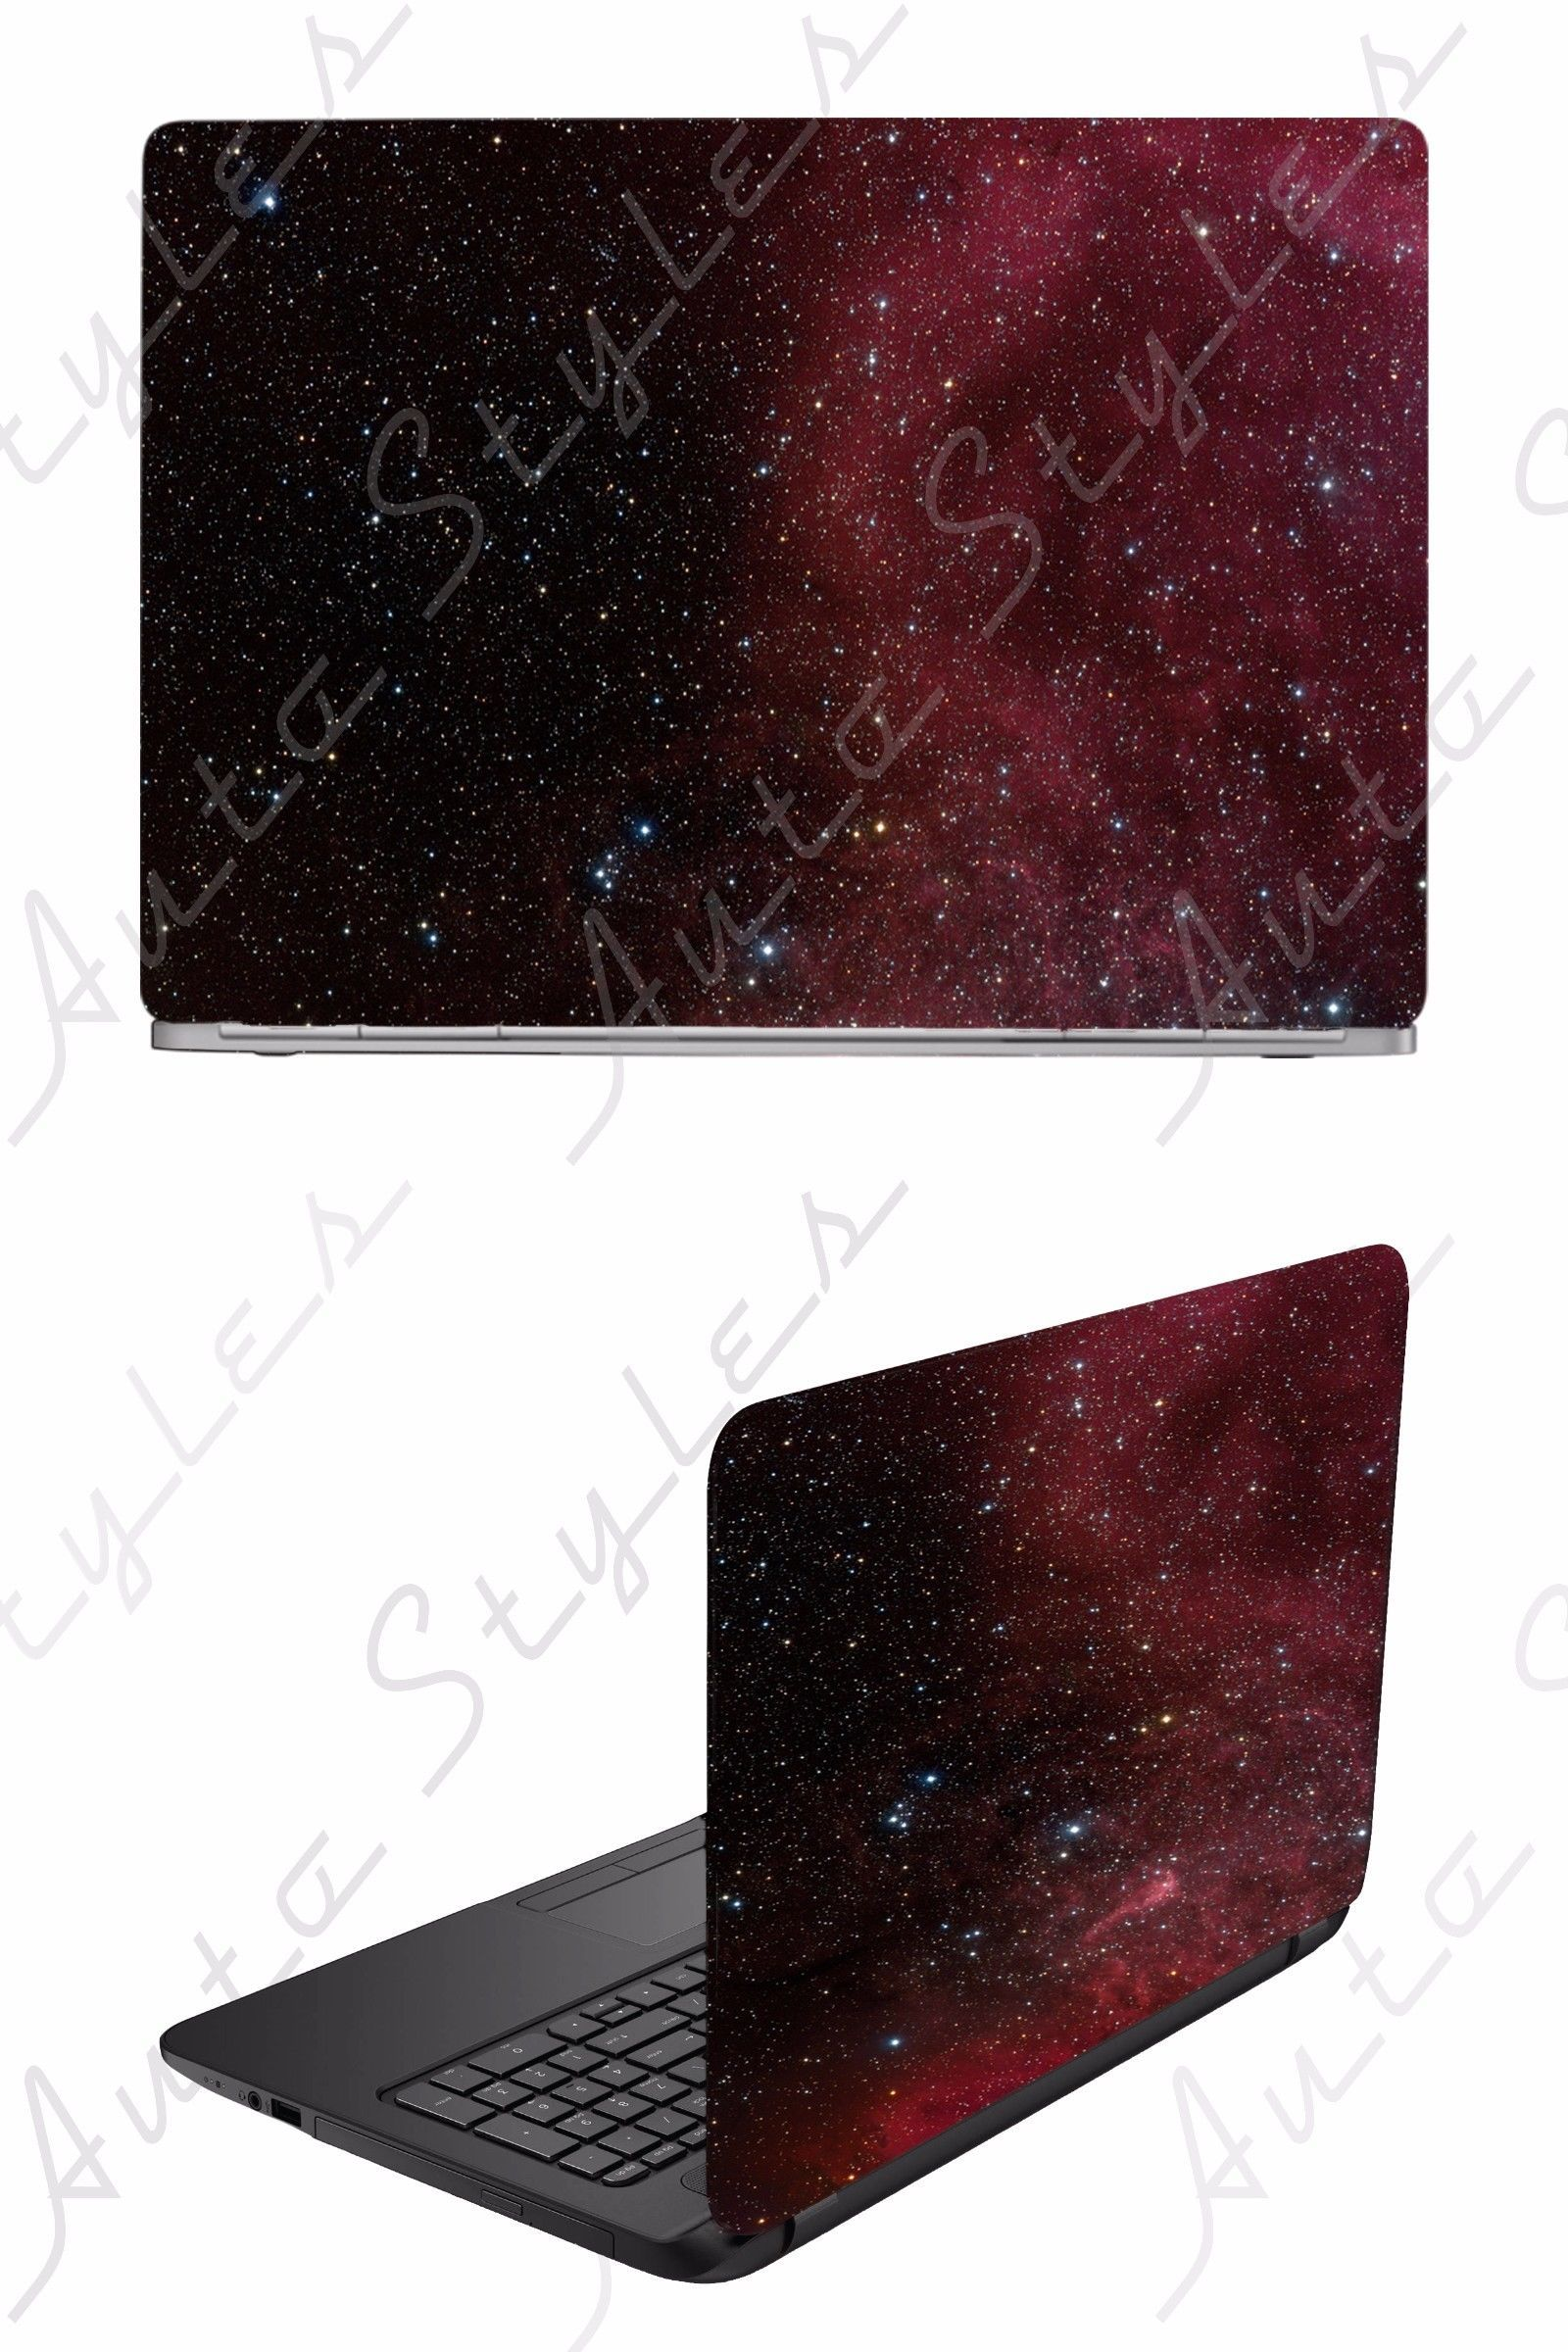 Case Mods Stickers and Decals 175677: Red Black Galaxy Sky Stars Space Nova Laptop Skin Vinyl Decal Sticker … | Vinyl decals. Vinyl decal ...